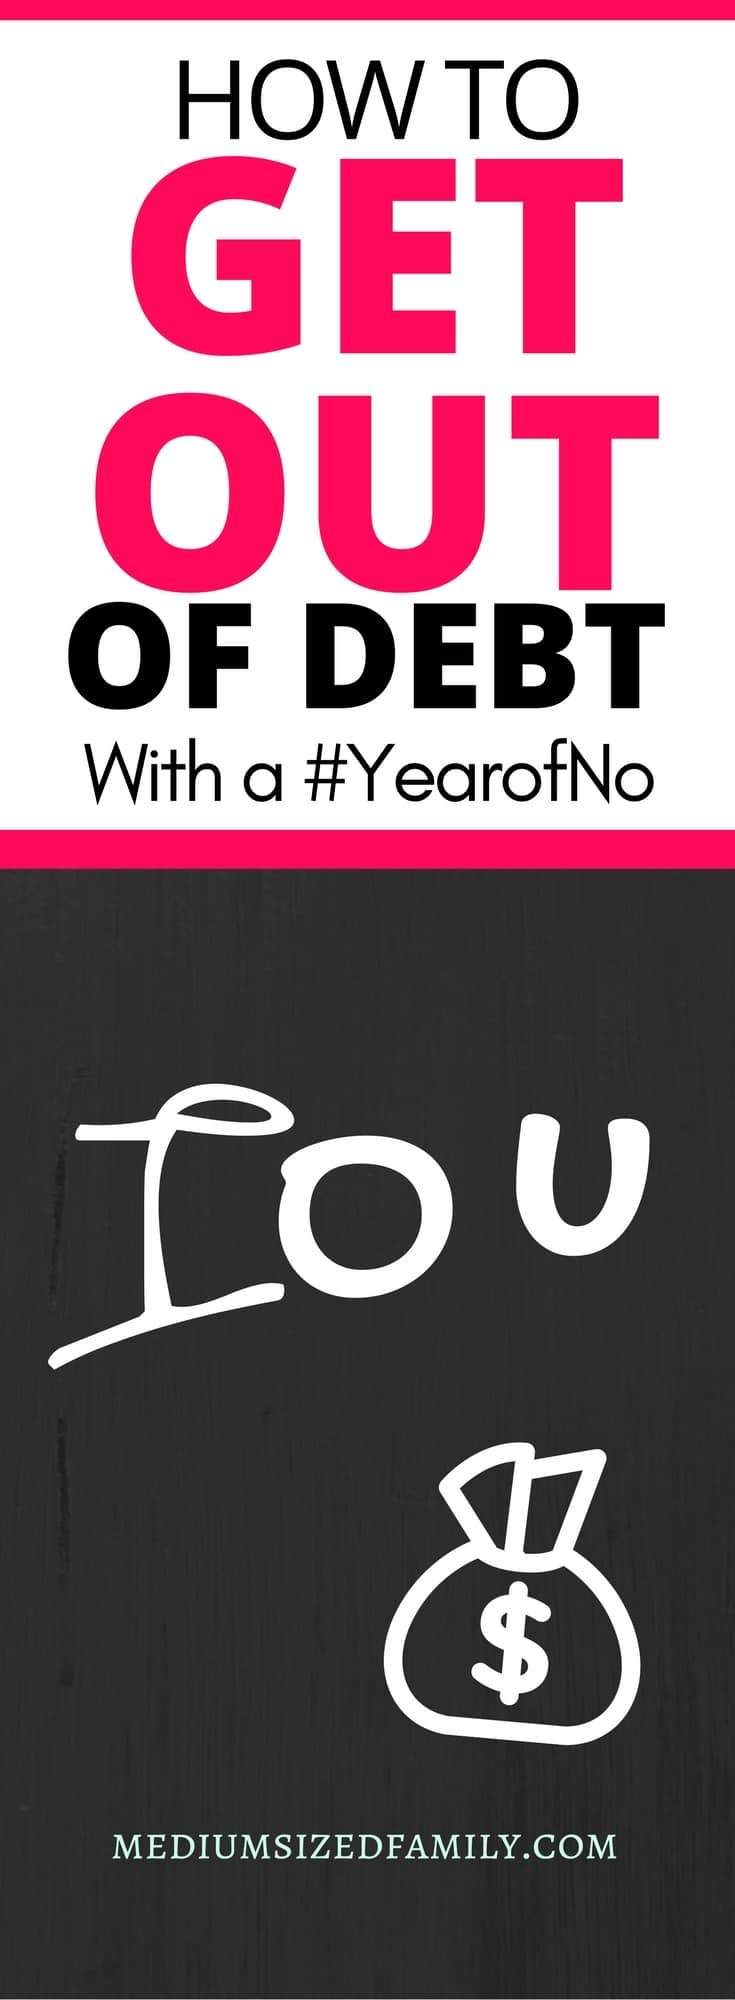 Learn how to get out of debt faster by adopting a #yearofno in your home. #moneysavingtips #creditcards